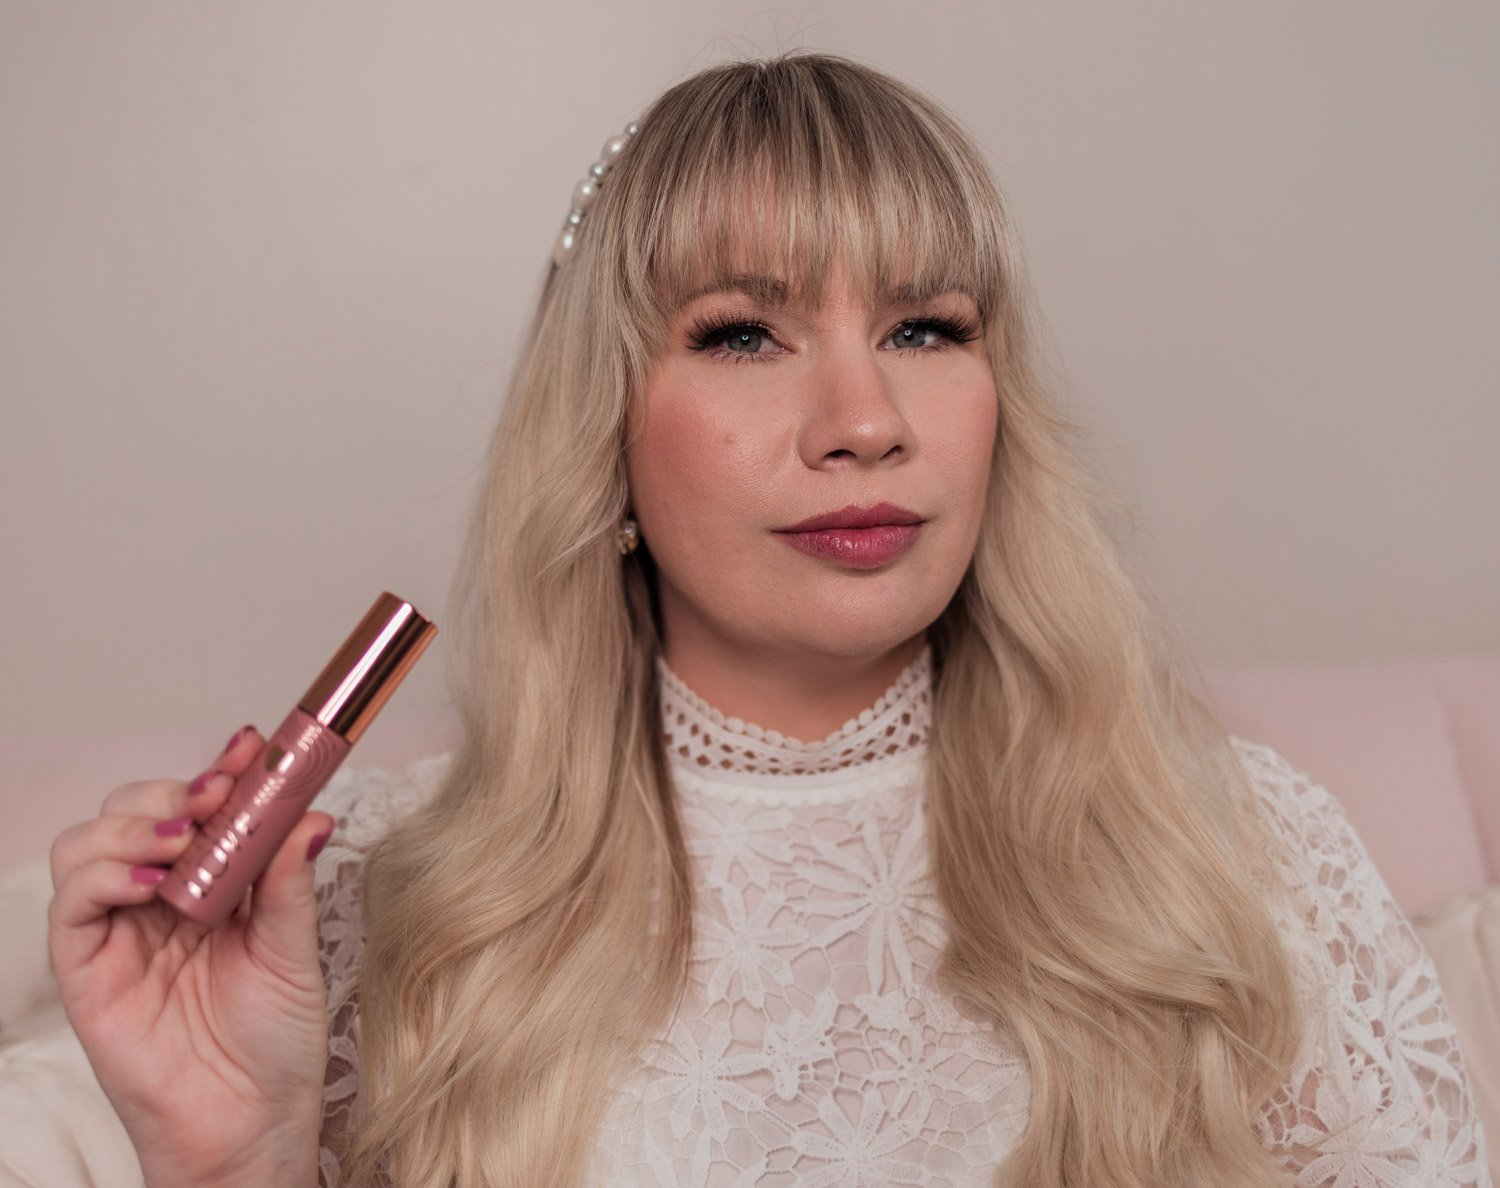 Feminine fashion and beauty blogger Elizabeth Hugen of Lizzie in Lace shares the Charlotte Tilbury Look of Love Collection Review and lipstick swatches including the Tinted Love Blushed Rose lip and cheek tint